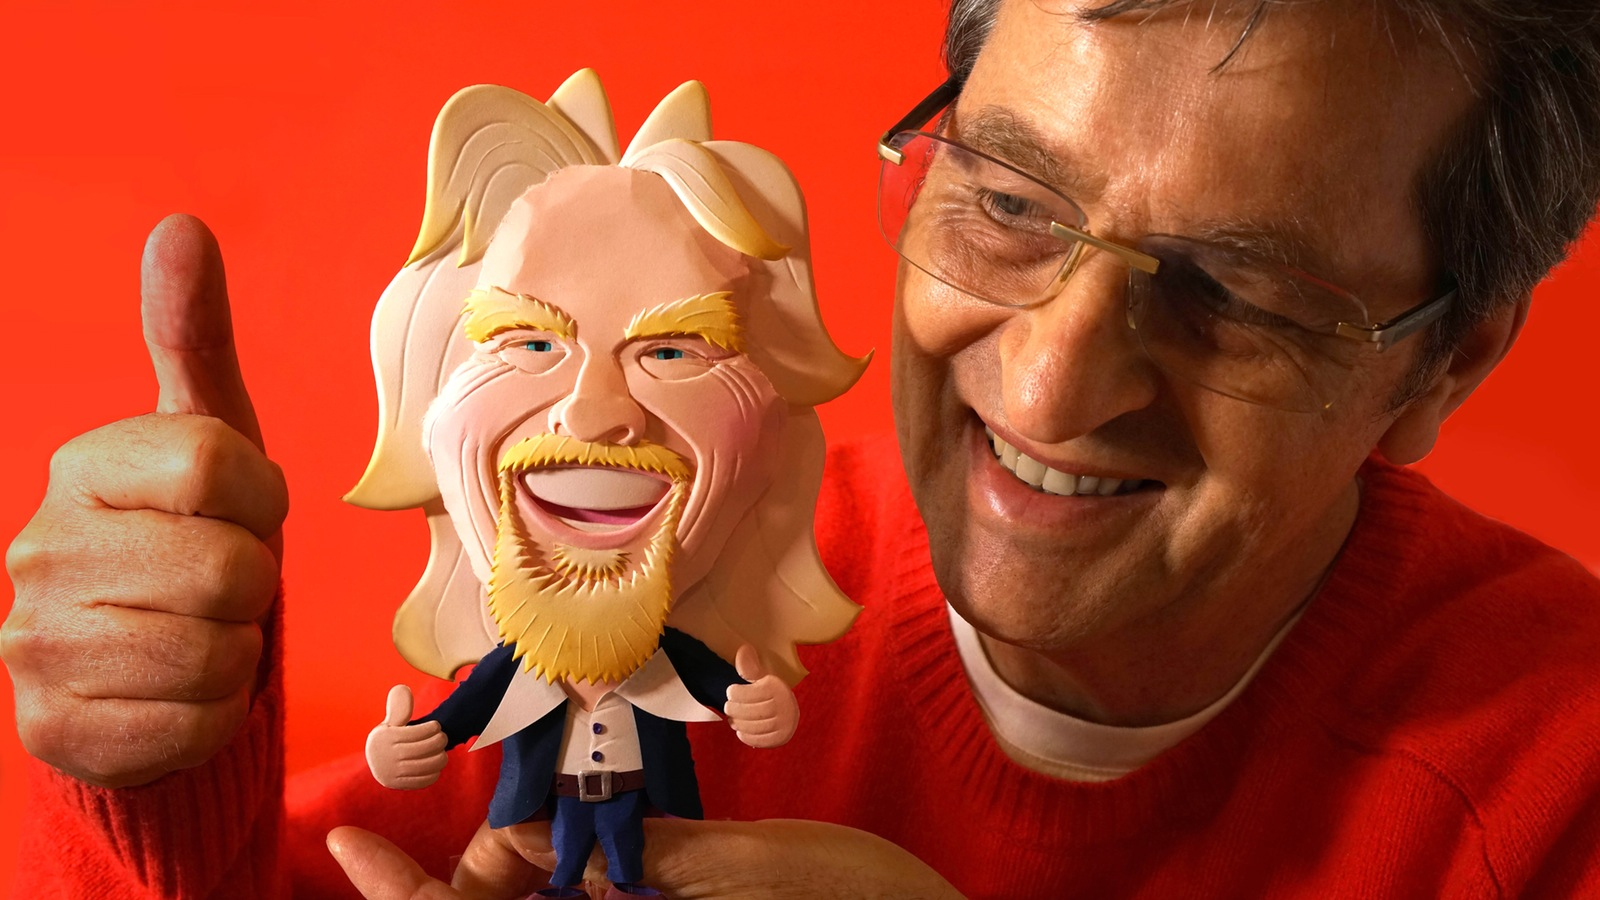 """The artist, Ray Besserdin with the Paperartzi caricature of Richard Branson called """"Thumbs Up!"""